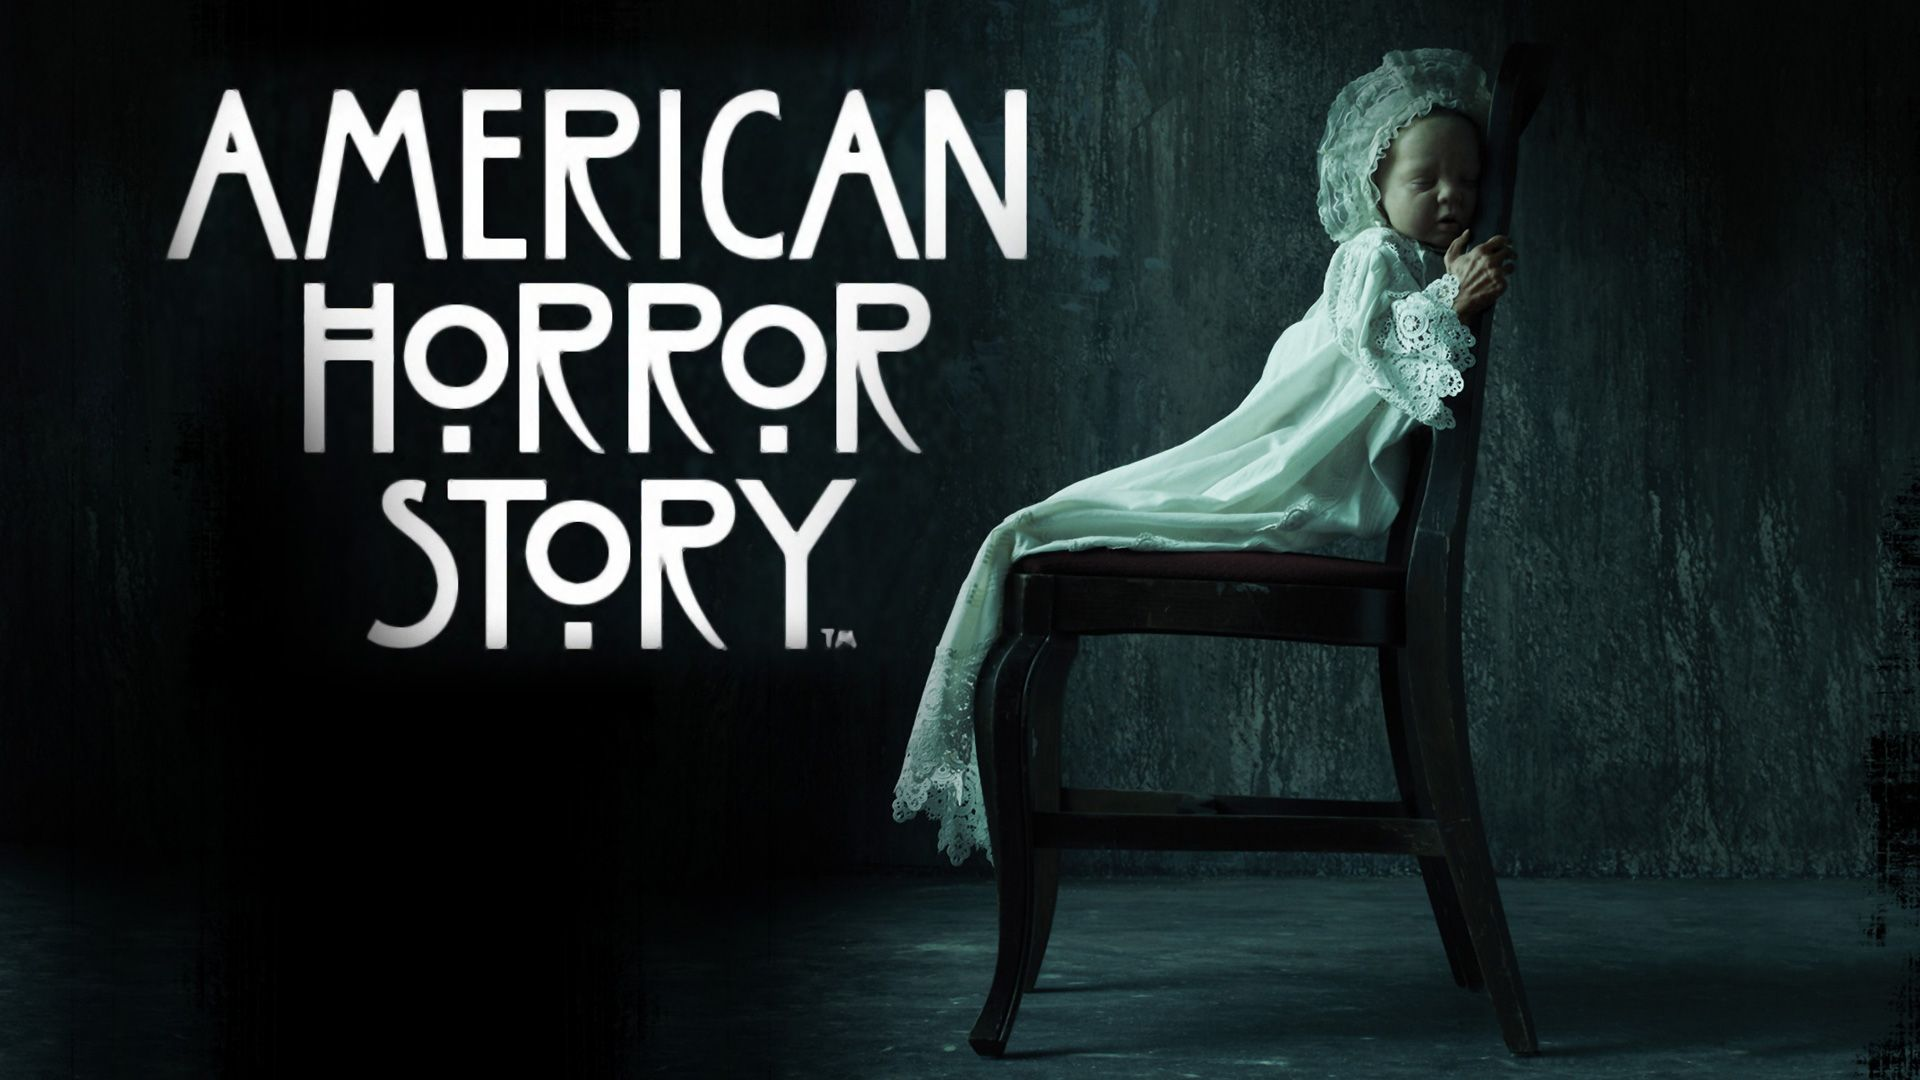 Free download American Horror Story Coven wallpapers 843309 [1920x1080] for your Desktop, Mobile & Tablet